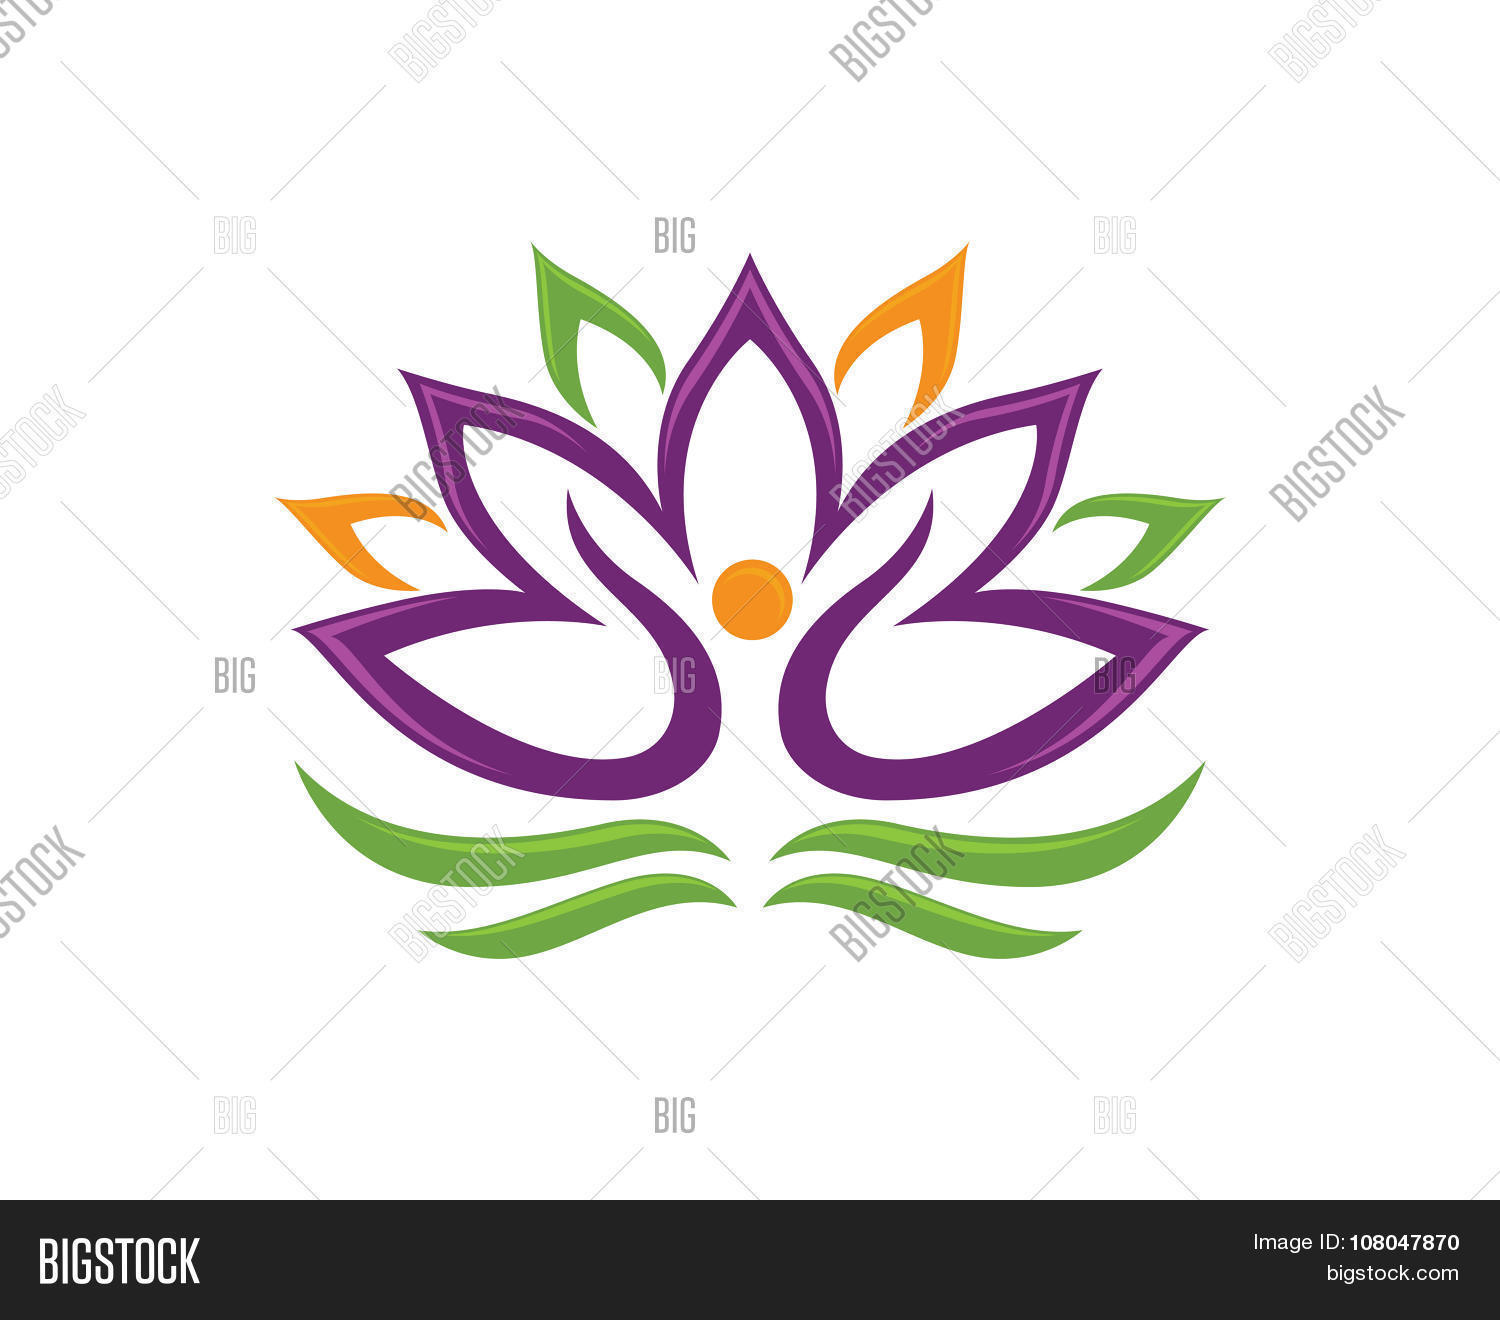 Stylized lotus flower vector photo free trial bigstock stylized lotus flower izmirmasajfo